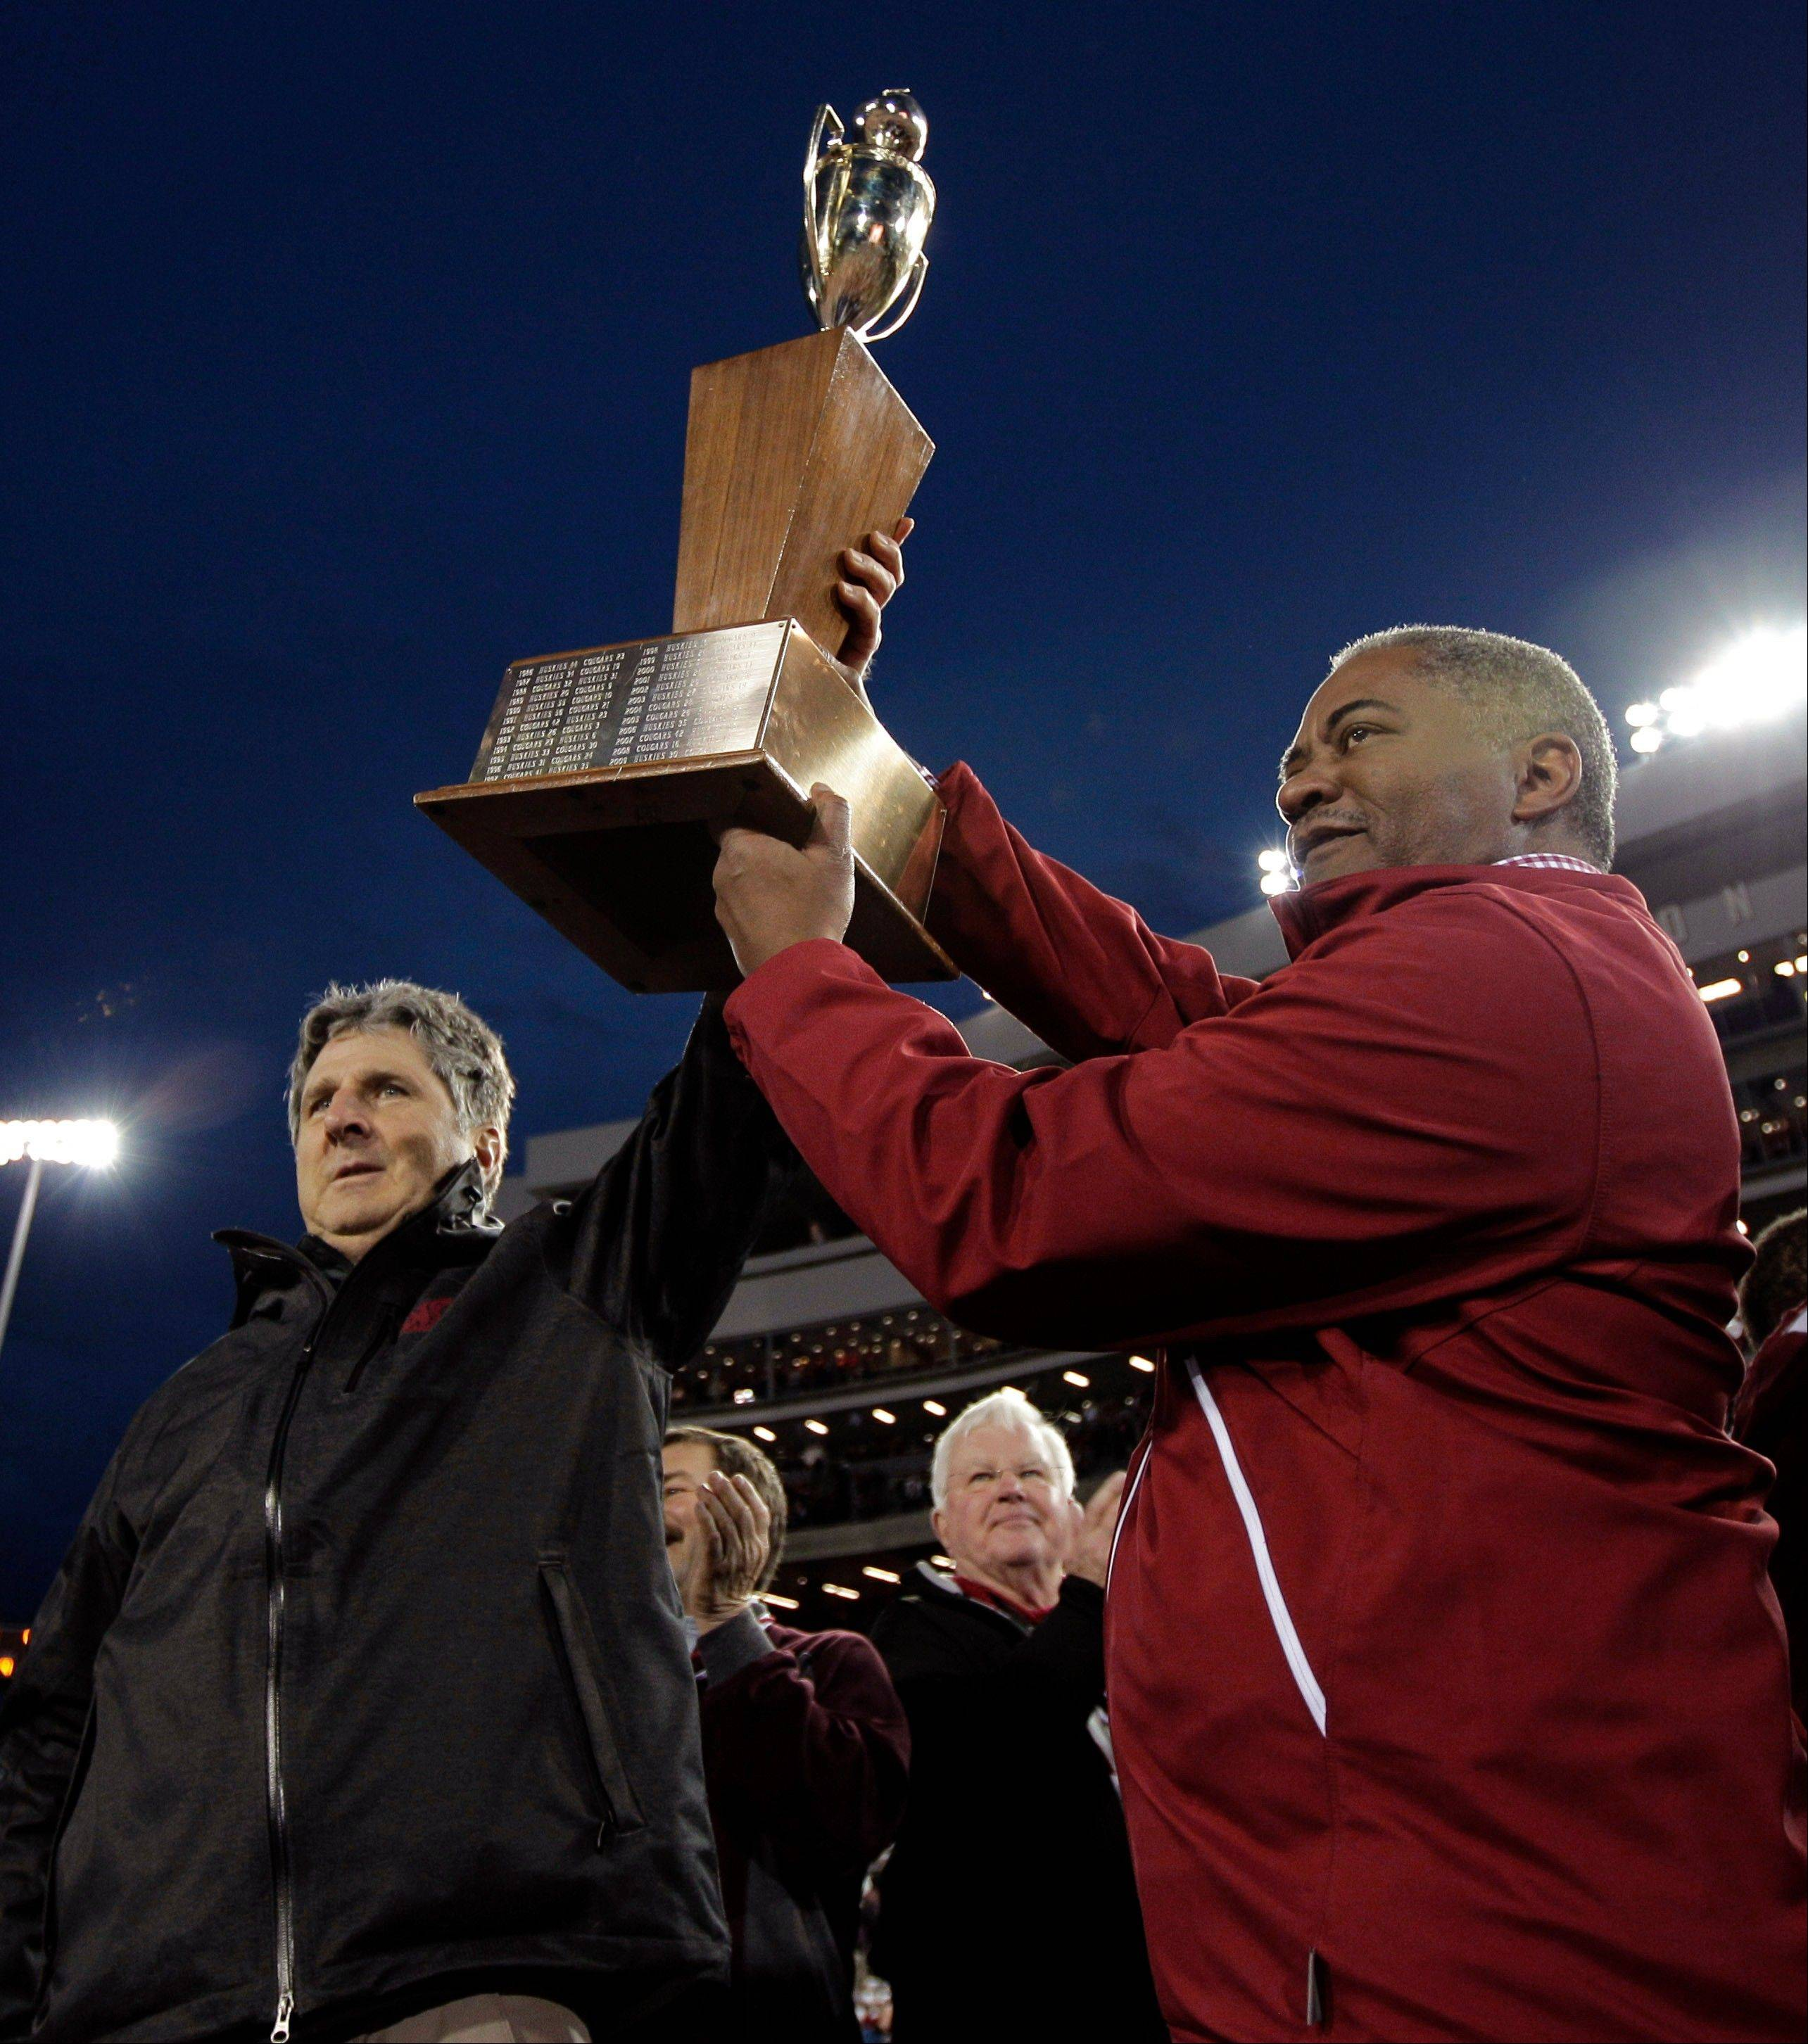 Washington State head coach Mike Leach, left, and Washington State President Elson Floyd, right, lift the Apple Cup trophy Friday after defeating Washington 31-28 in overtime in Pullman, Wash.